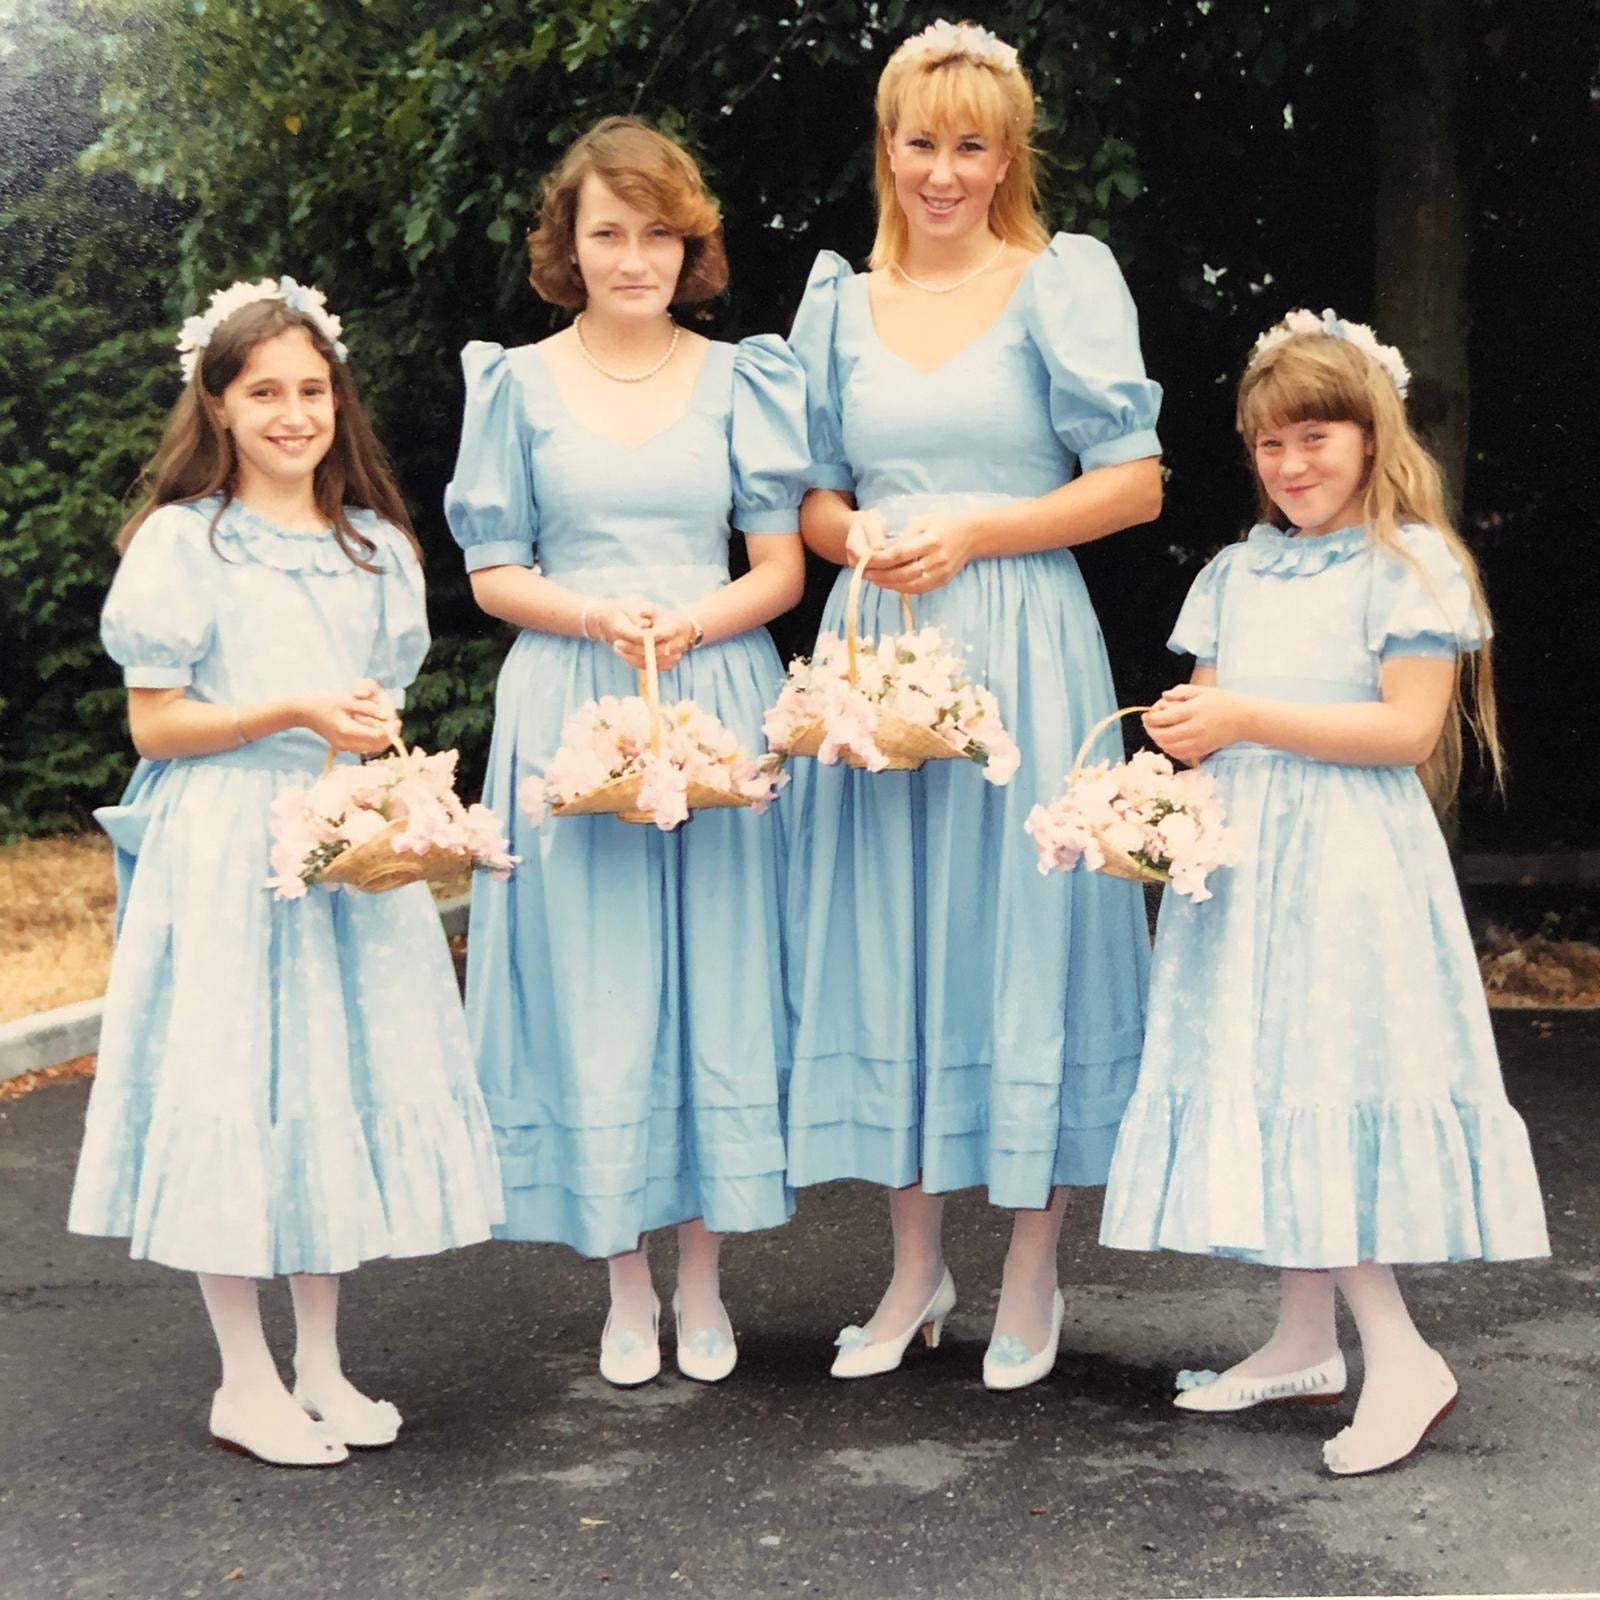 Laura Ashley: why nostalgia does not guarantee a brand's future